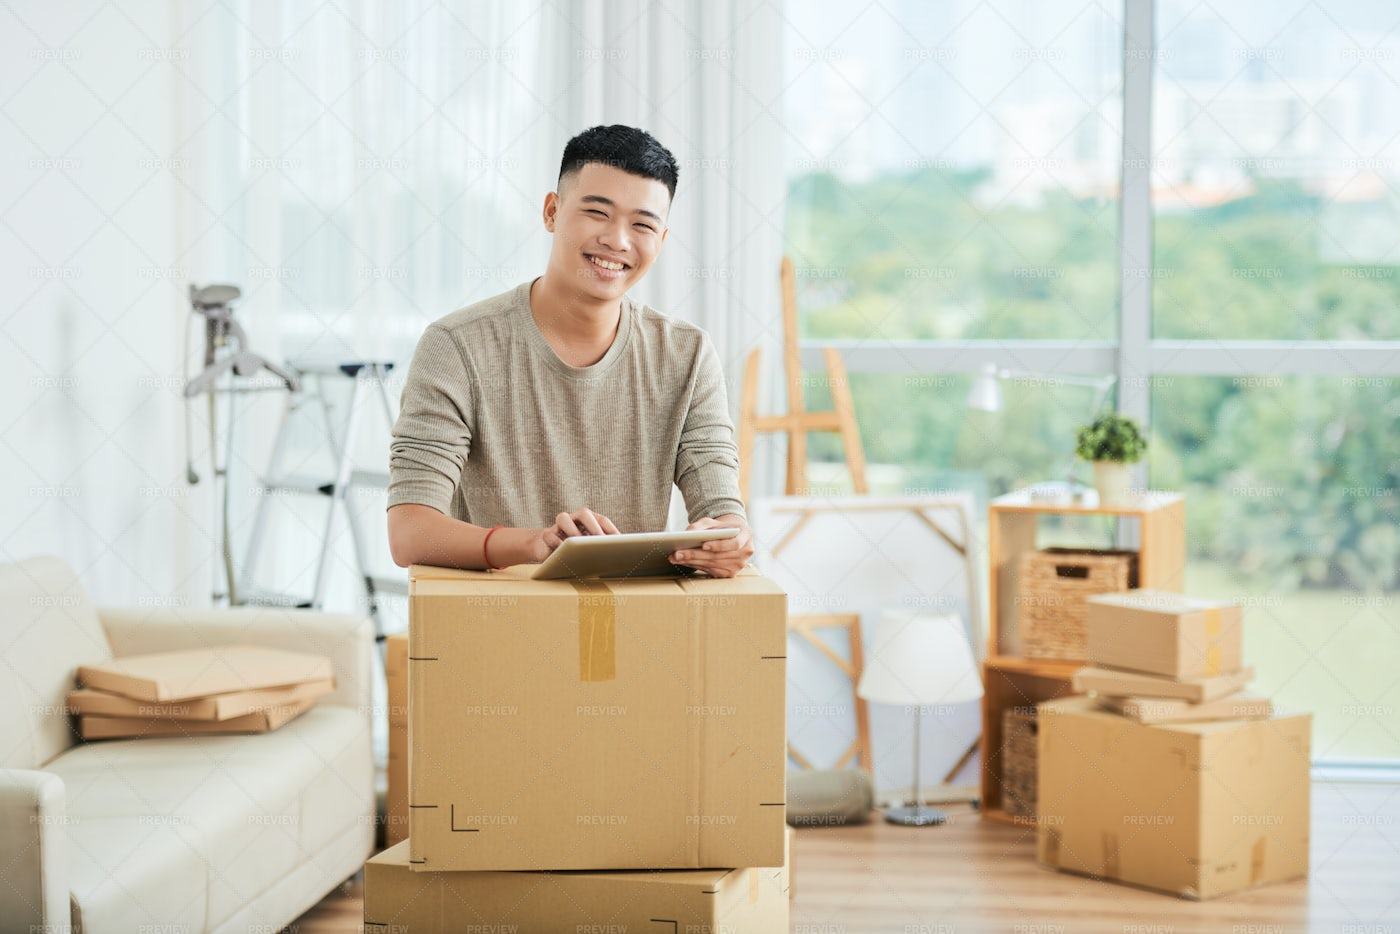 Asian Man With Packed Boxes: Stock Photos